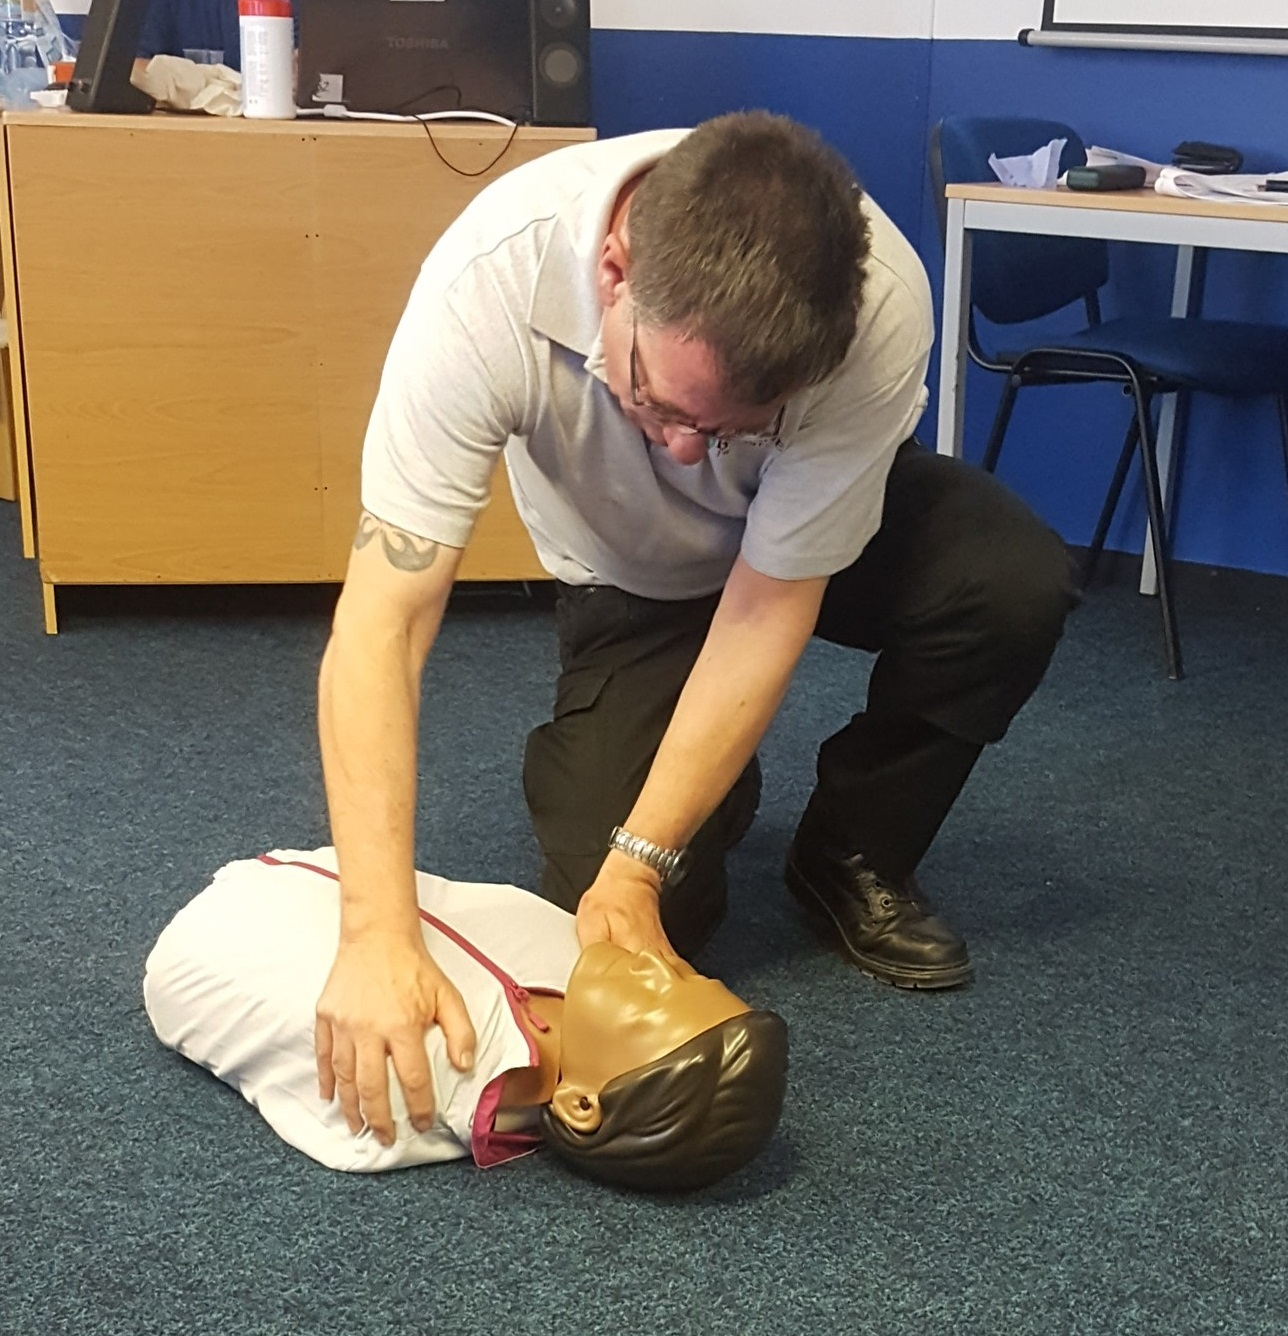 Man showing CPR technique on a dummy